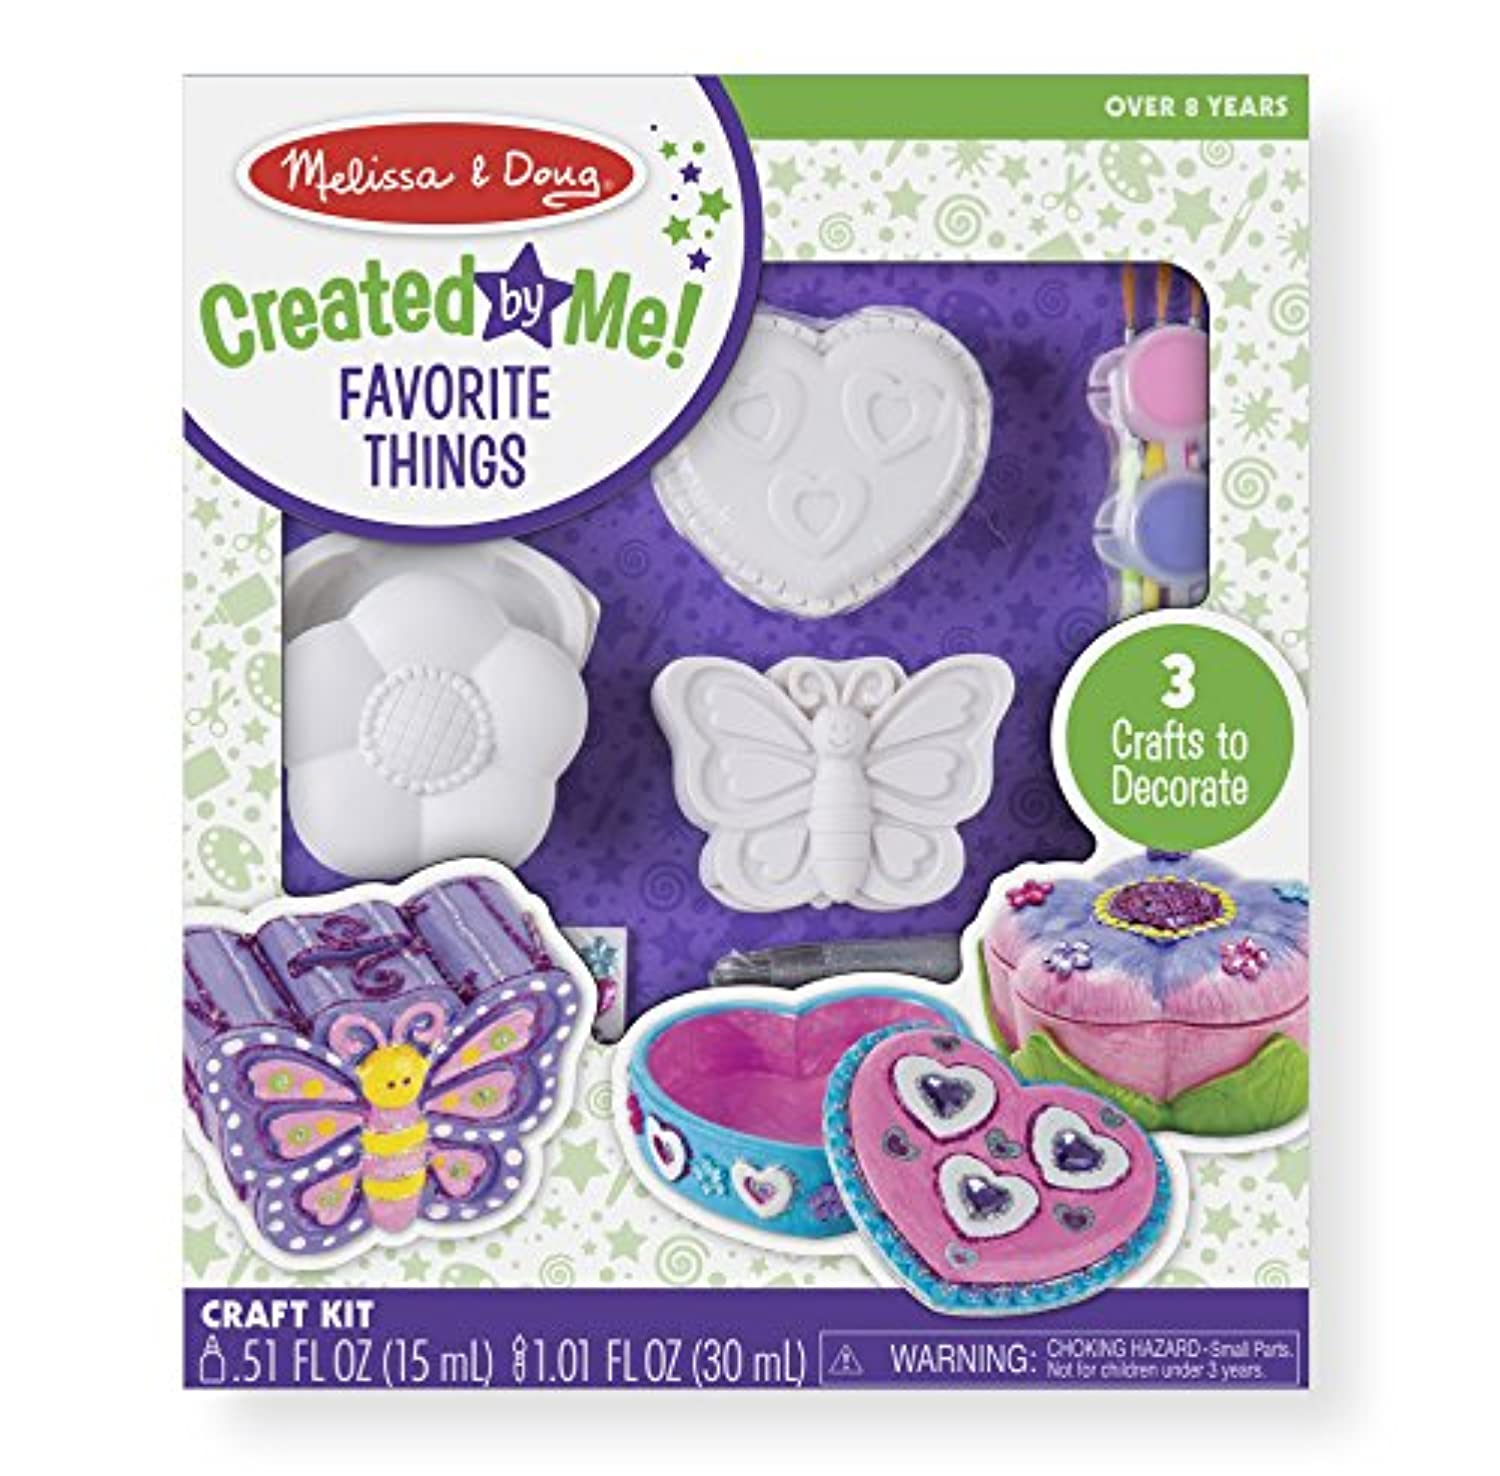 Melissa & Doug decorate-your-own Favorite Thingsクラフトキットセット:花とハートTreasureボックスとバタフライ銀行